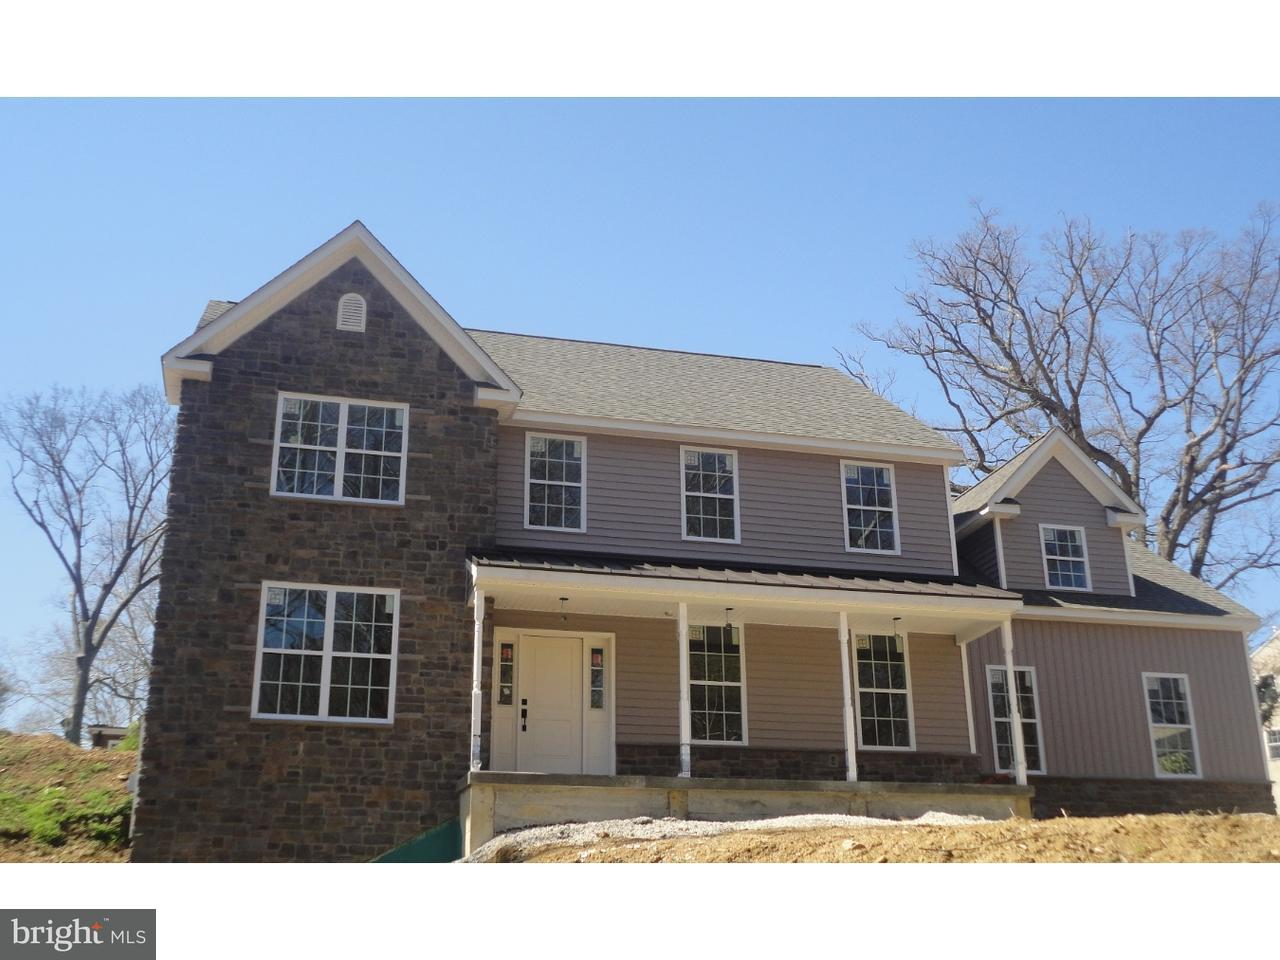 Single Family Home for Sale at LOT 4 BULLENS Lane Wallingford, Pennsylvania 19086 United States